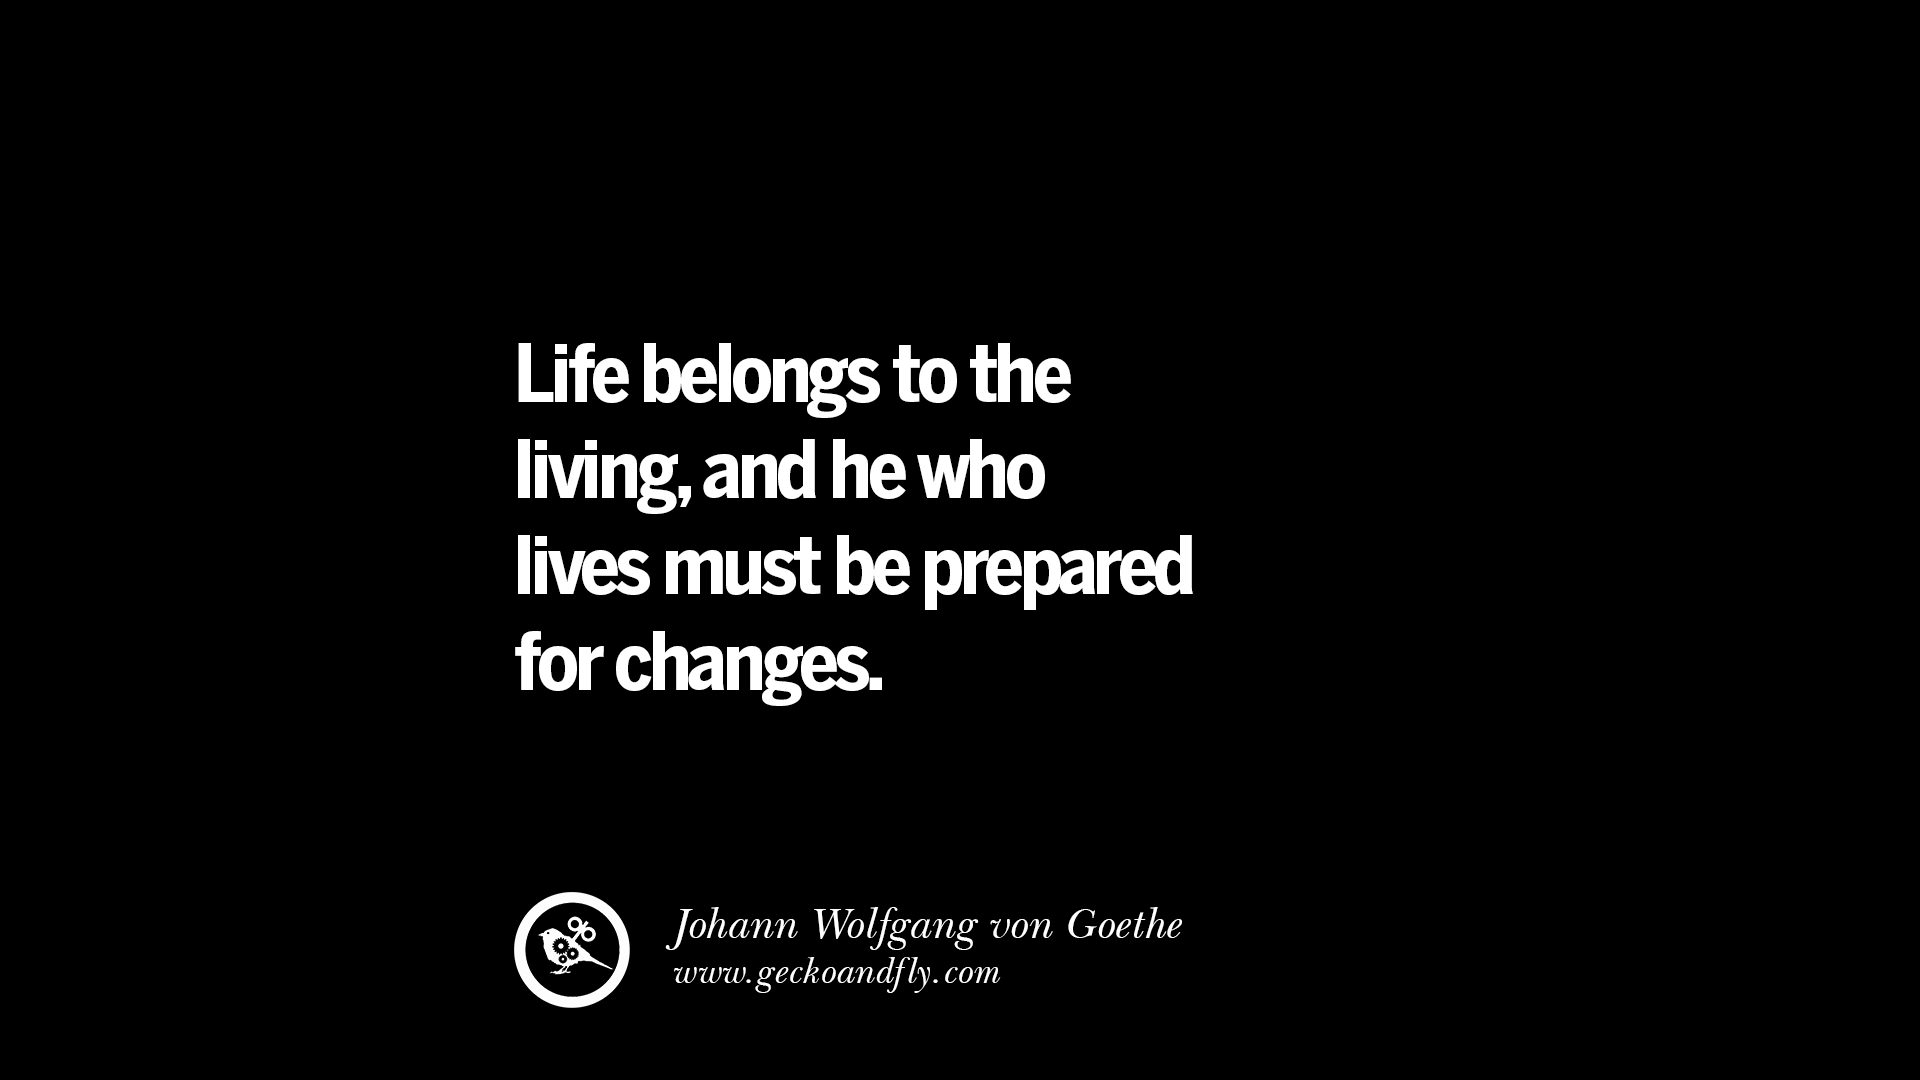 50 Inspiring Quotes On Change - Make A Difference Today